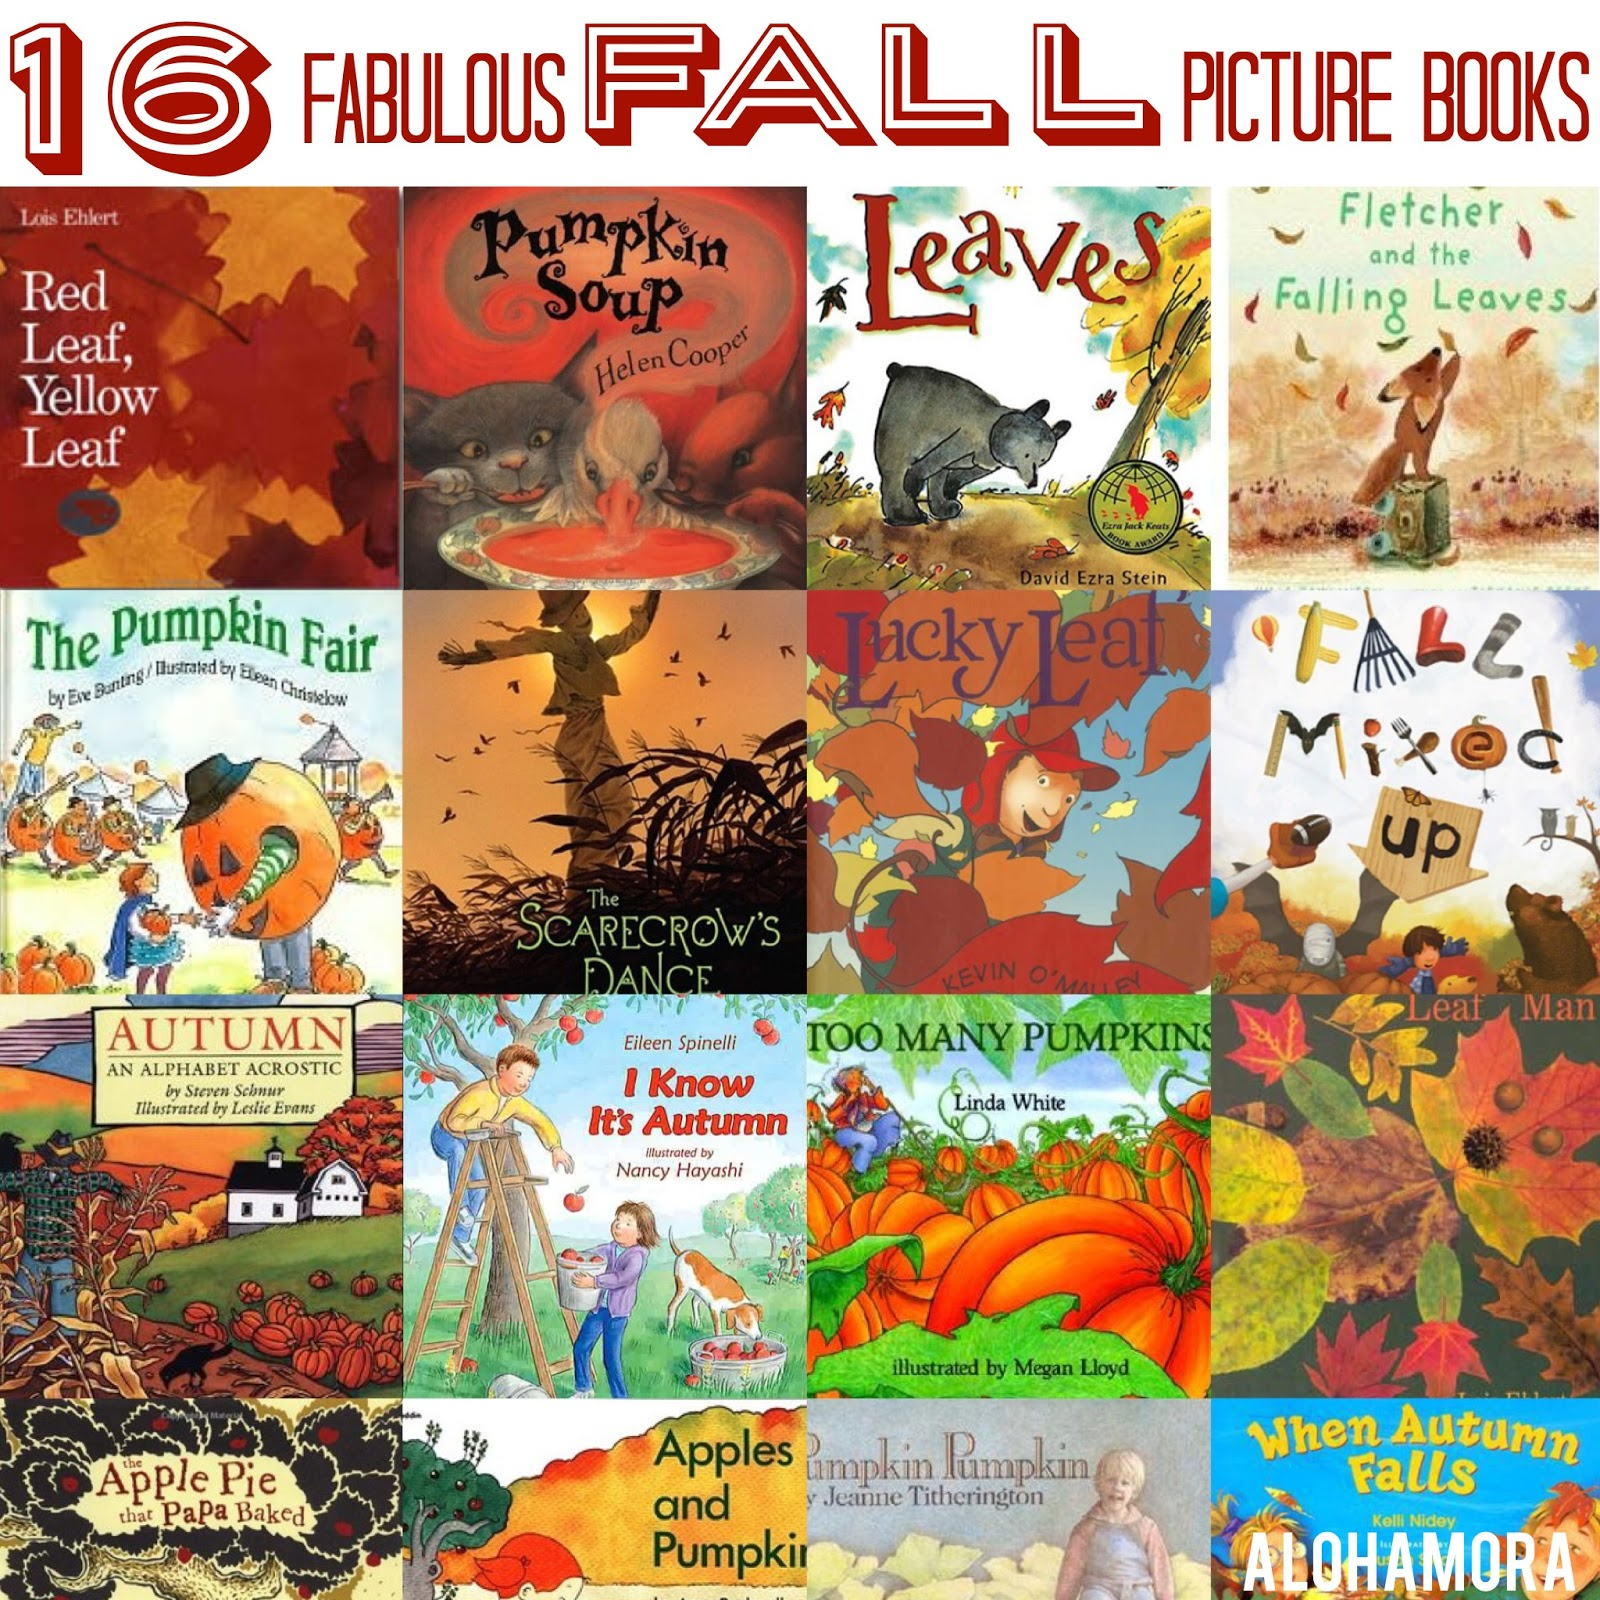 16 Fabulous Fall or Autumn Picture Books for parents to love to read, teachers to use with lessons (tons of ideas included in the list), and librarians to put on display as well as use in lessons.  Books all dealing with apples, leaf, leaves, pumpkins, scarecrows, alphabet poetry, life cycles,  fairs, and so much more.  Alohamora Open a Book http://alohamoraopenabook.blogspot.com/